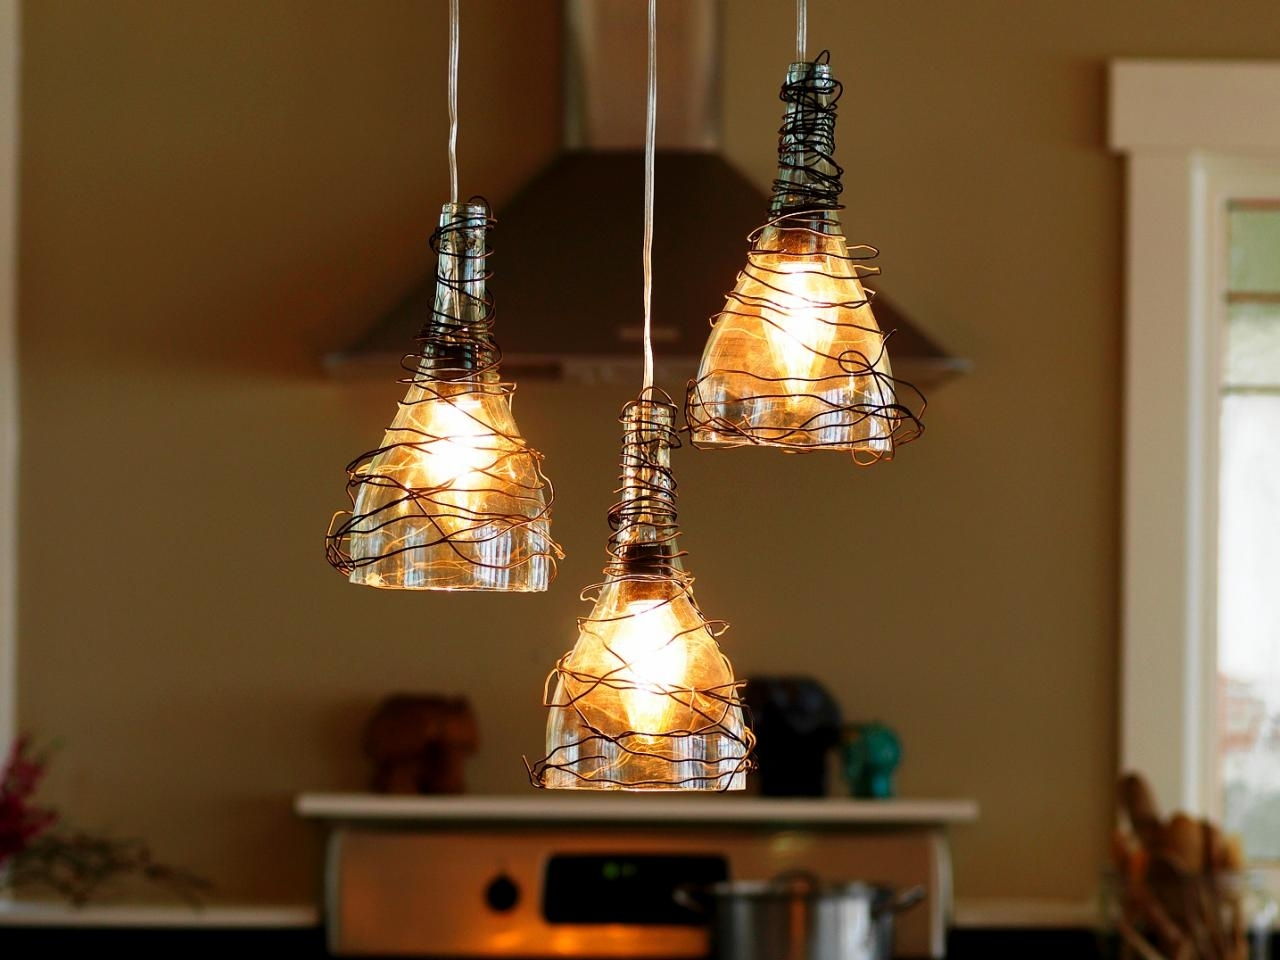 Upcycle Wine Bottle Into Pendant Light Fixtures | How Tos | Diy For Making Outdoor Hanging Lights From Wine Bottles (#14 of 15)